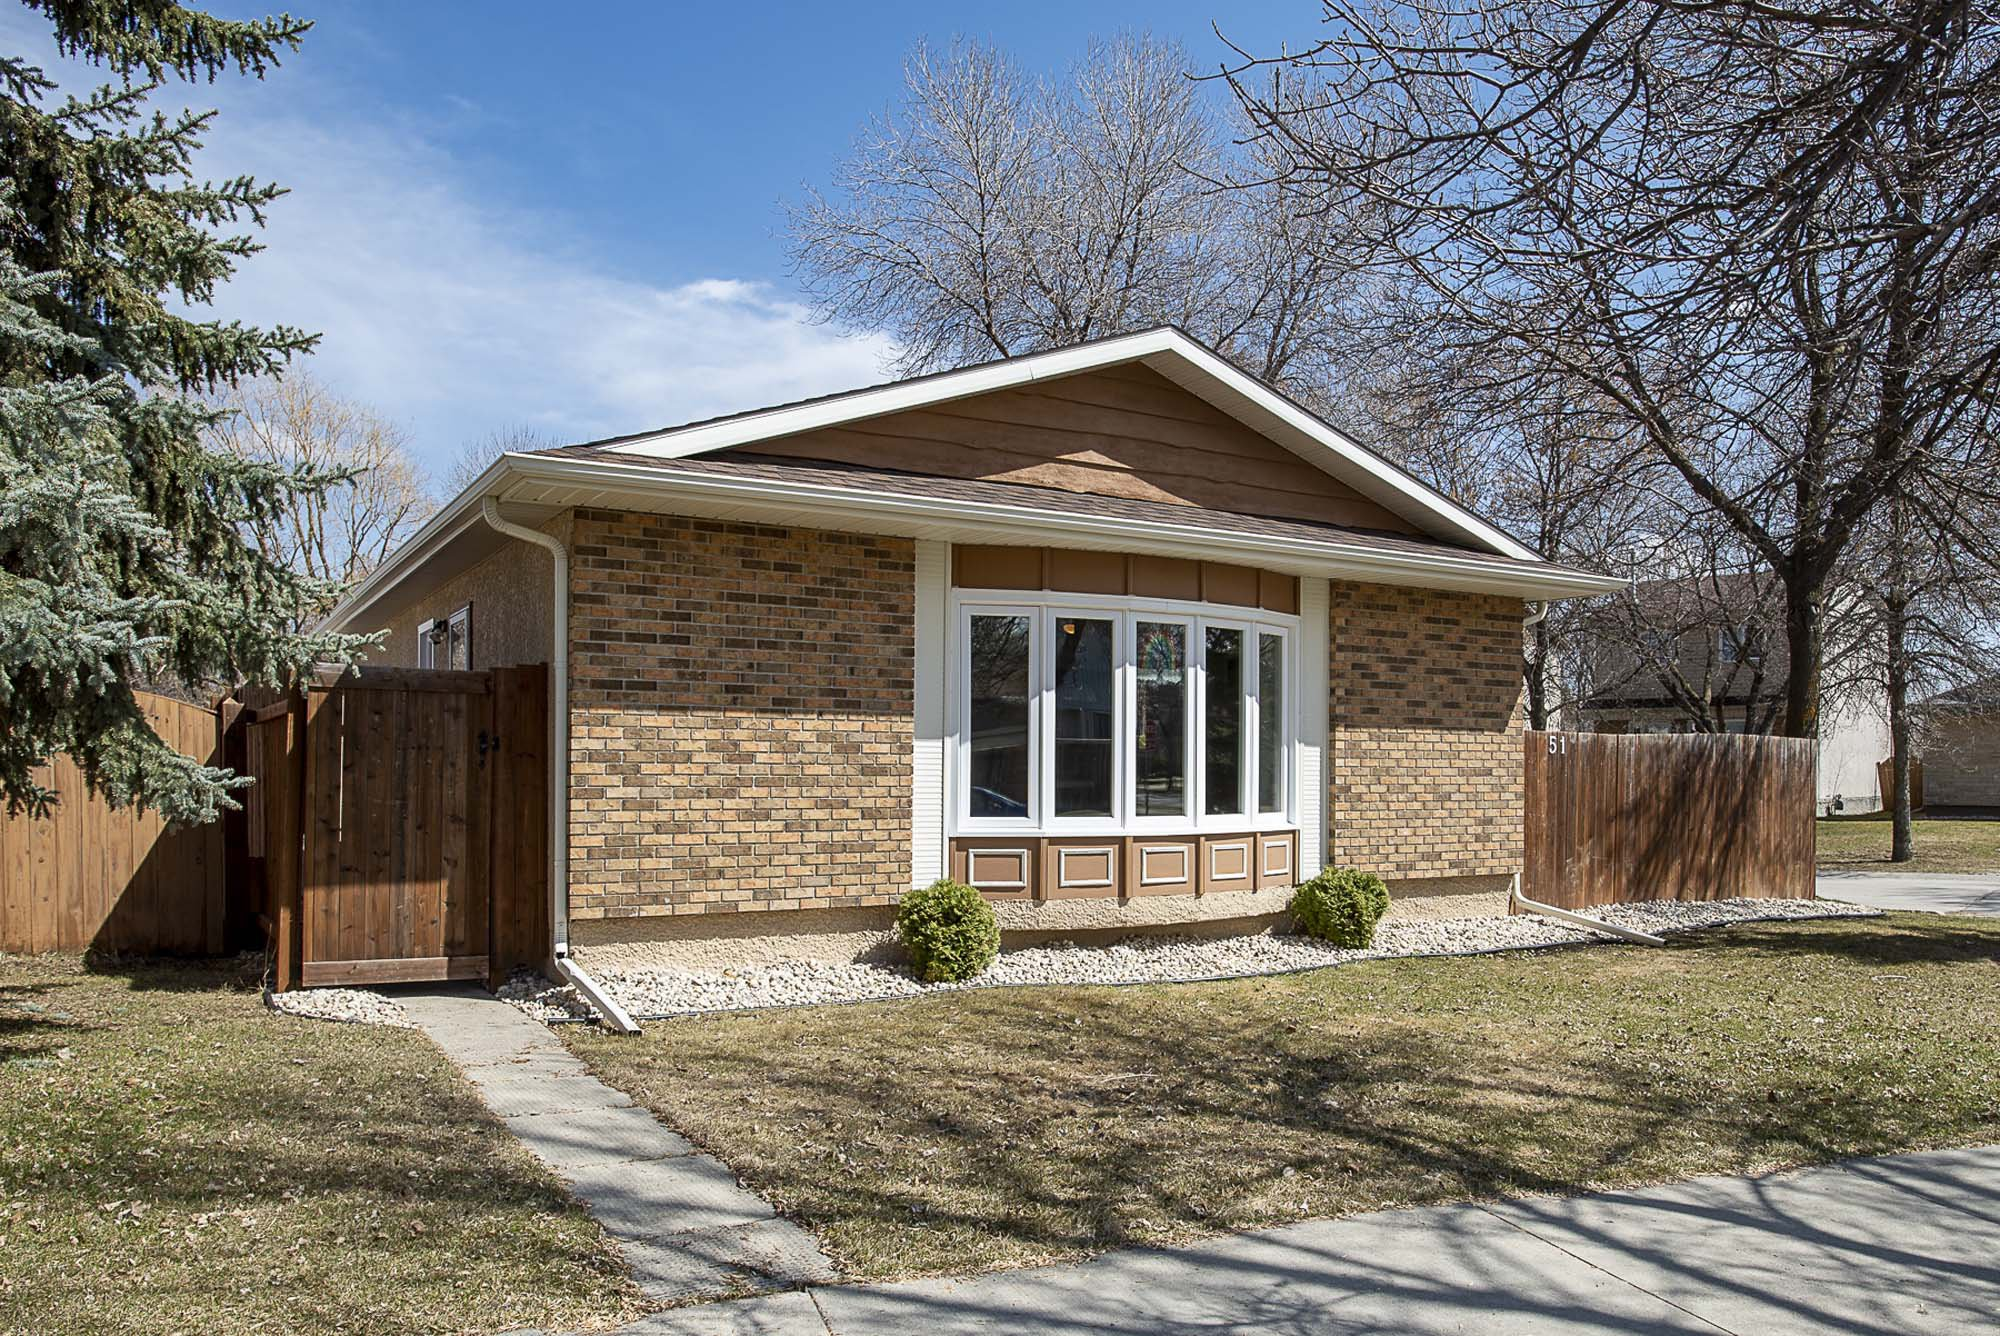 Main Photo: 51 Sandrington Drive in Winnipeg: River Park South Residential for sale (2E)  : MLS®# 202008929